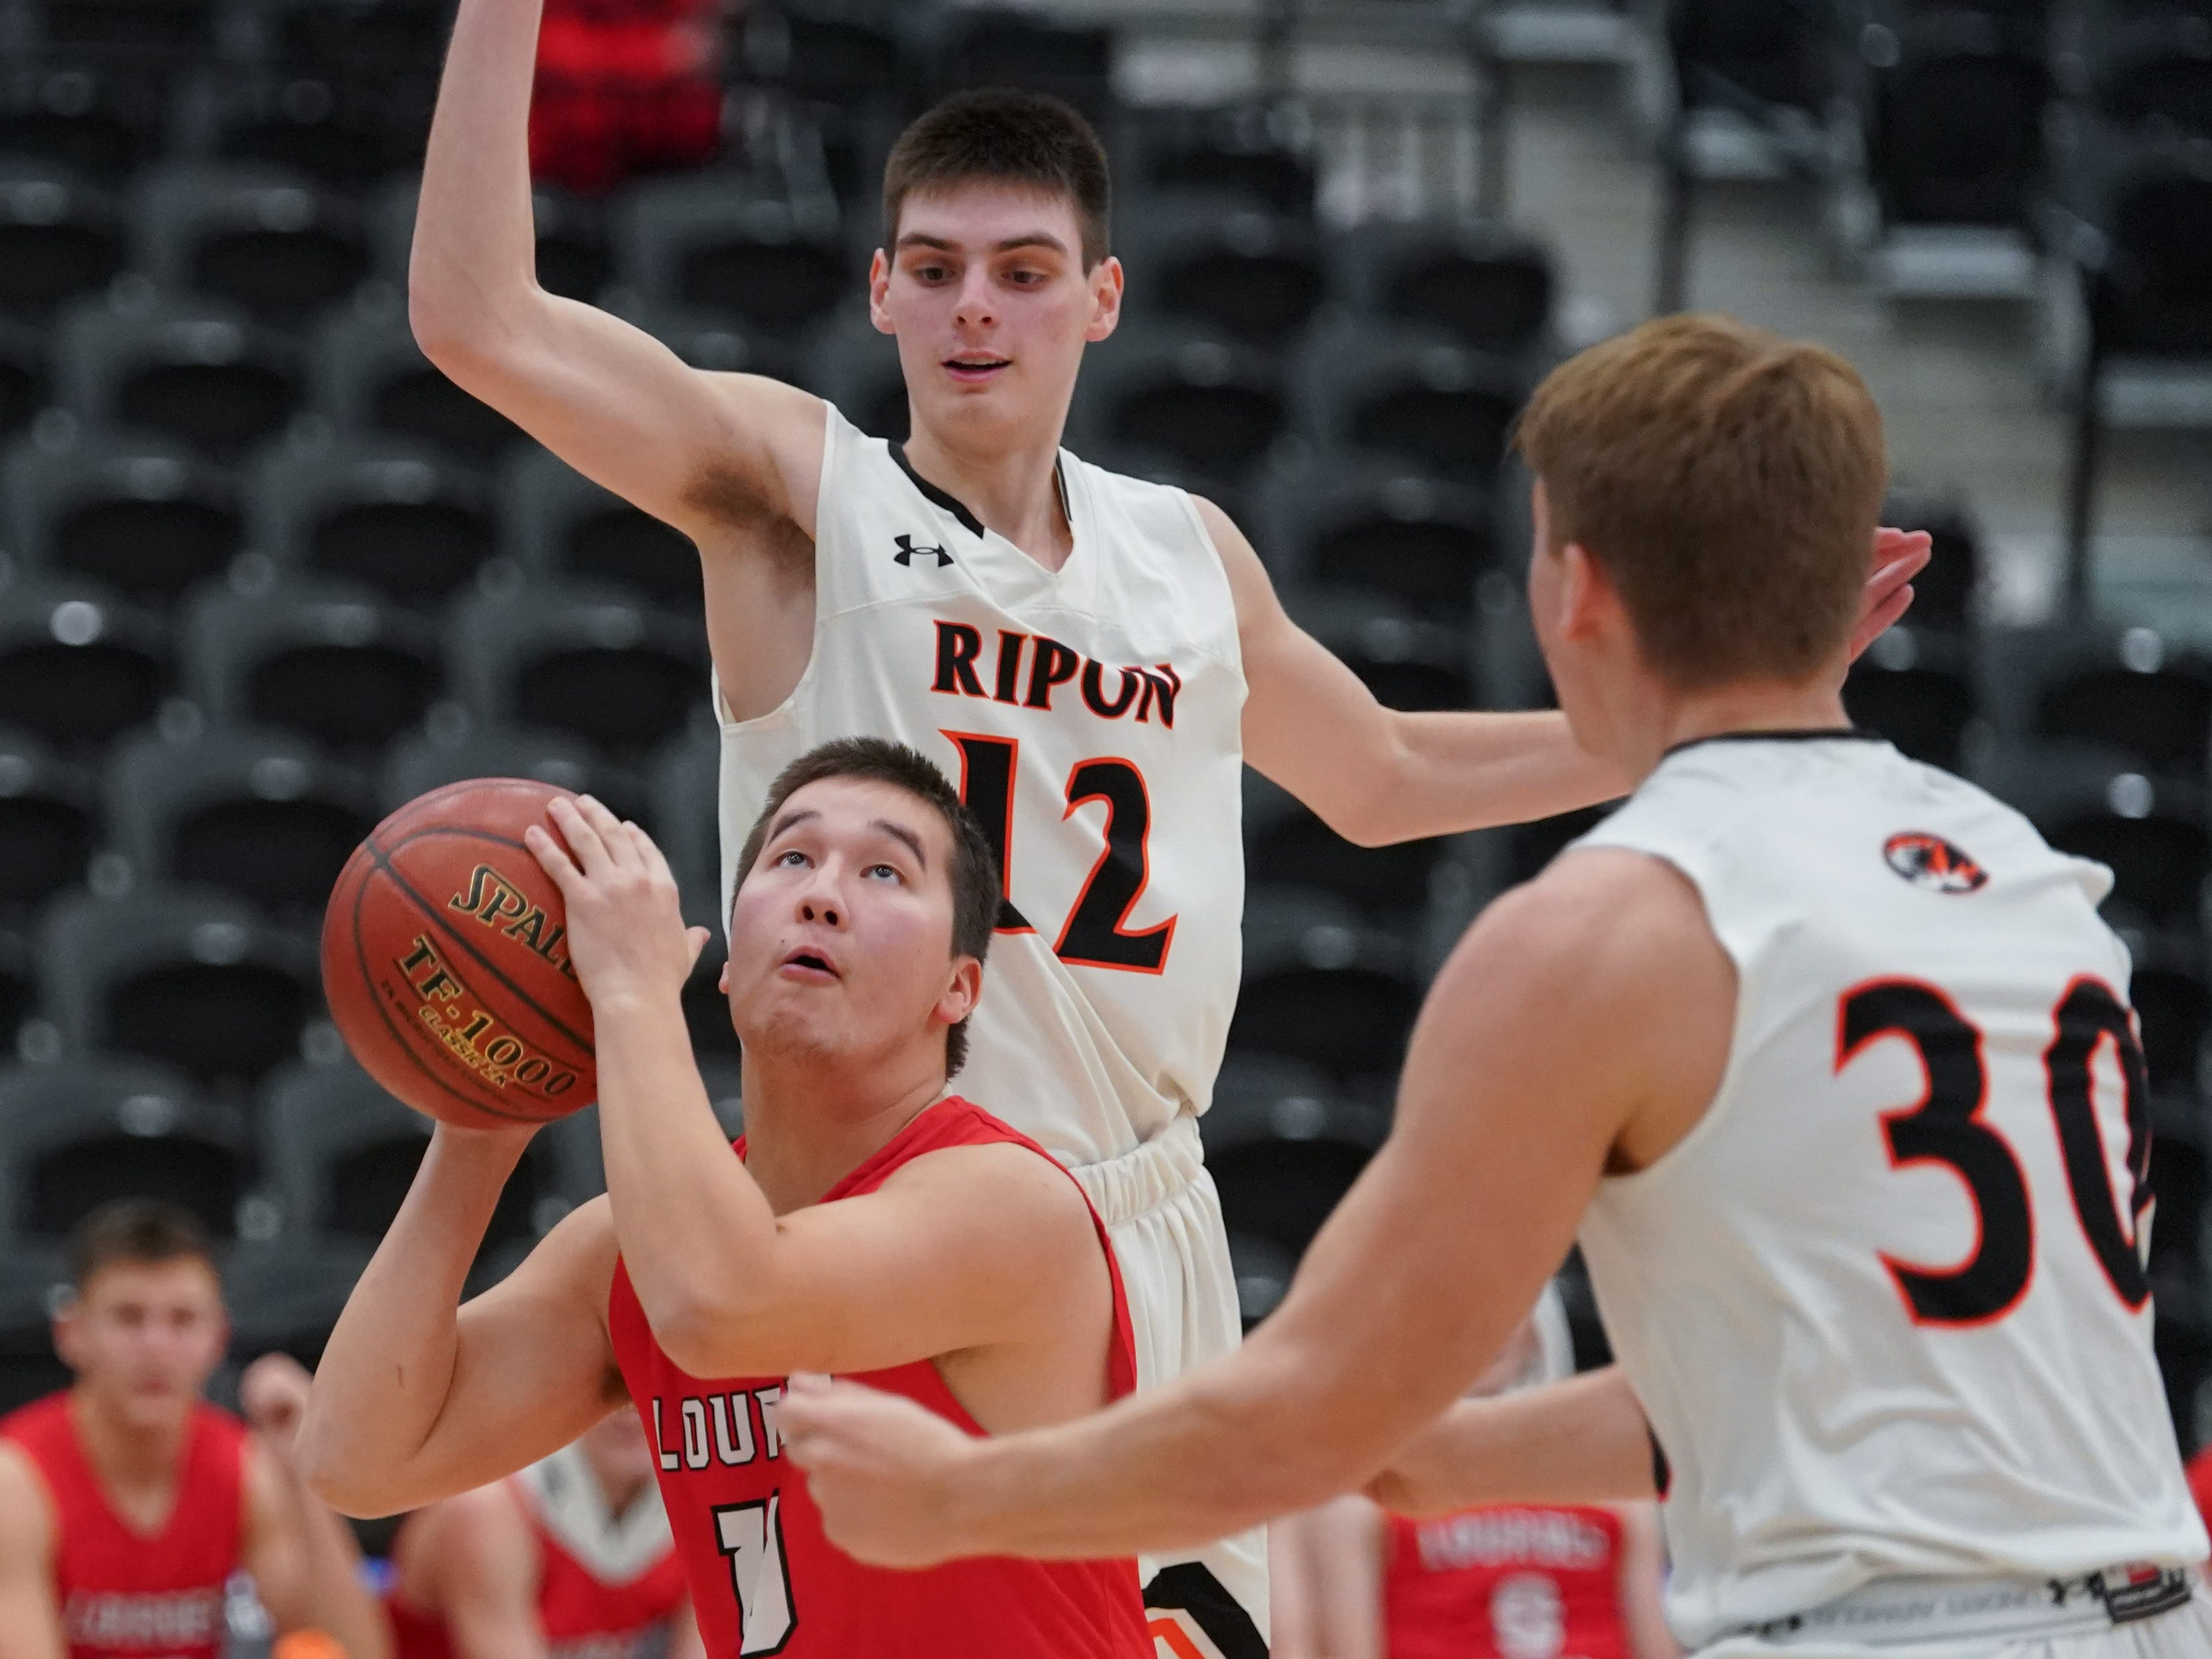 Ben Sydlik (10) of Lourdes tries to get a shot off in front of Luke Rogers (12) of Ripon. The Lourdes Knights and Ripon Tigers met in a nonconference basketball game Saturday afternoon, December 29, 2018 at the Menomonie Nation Arena in Oshkosh.